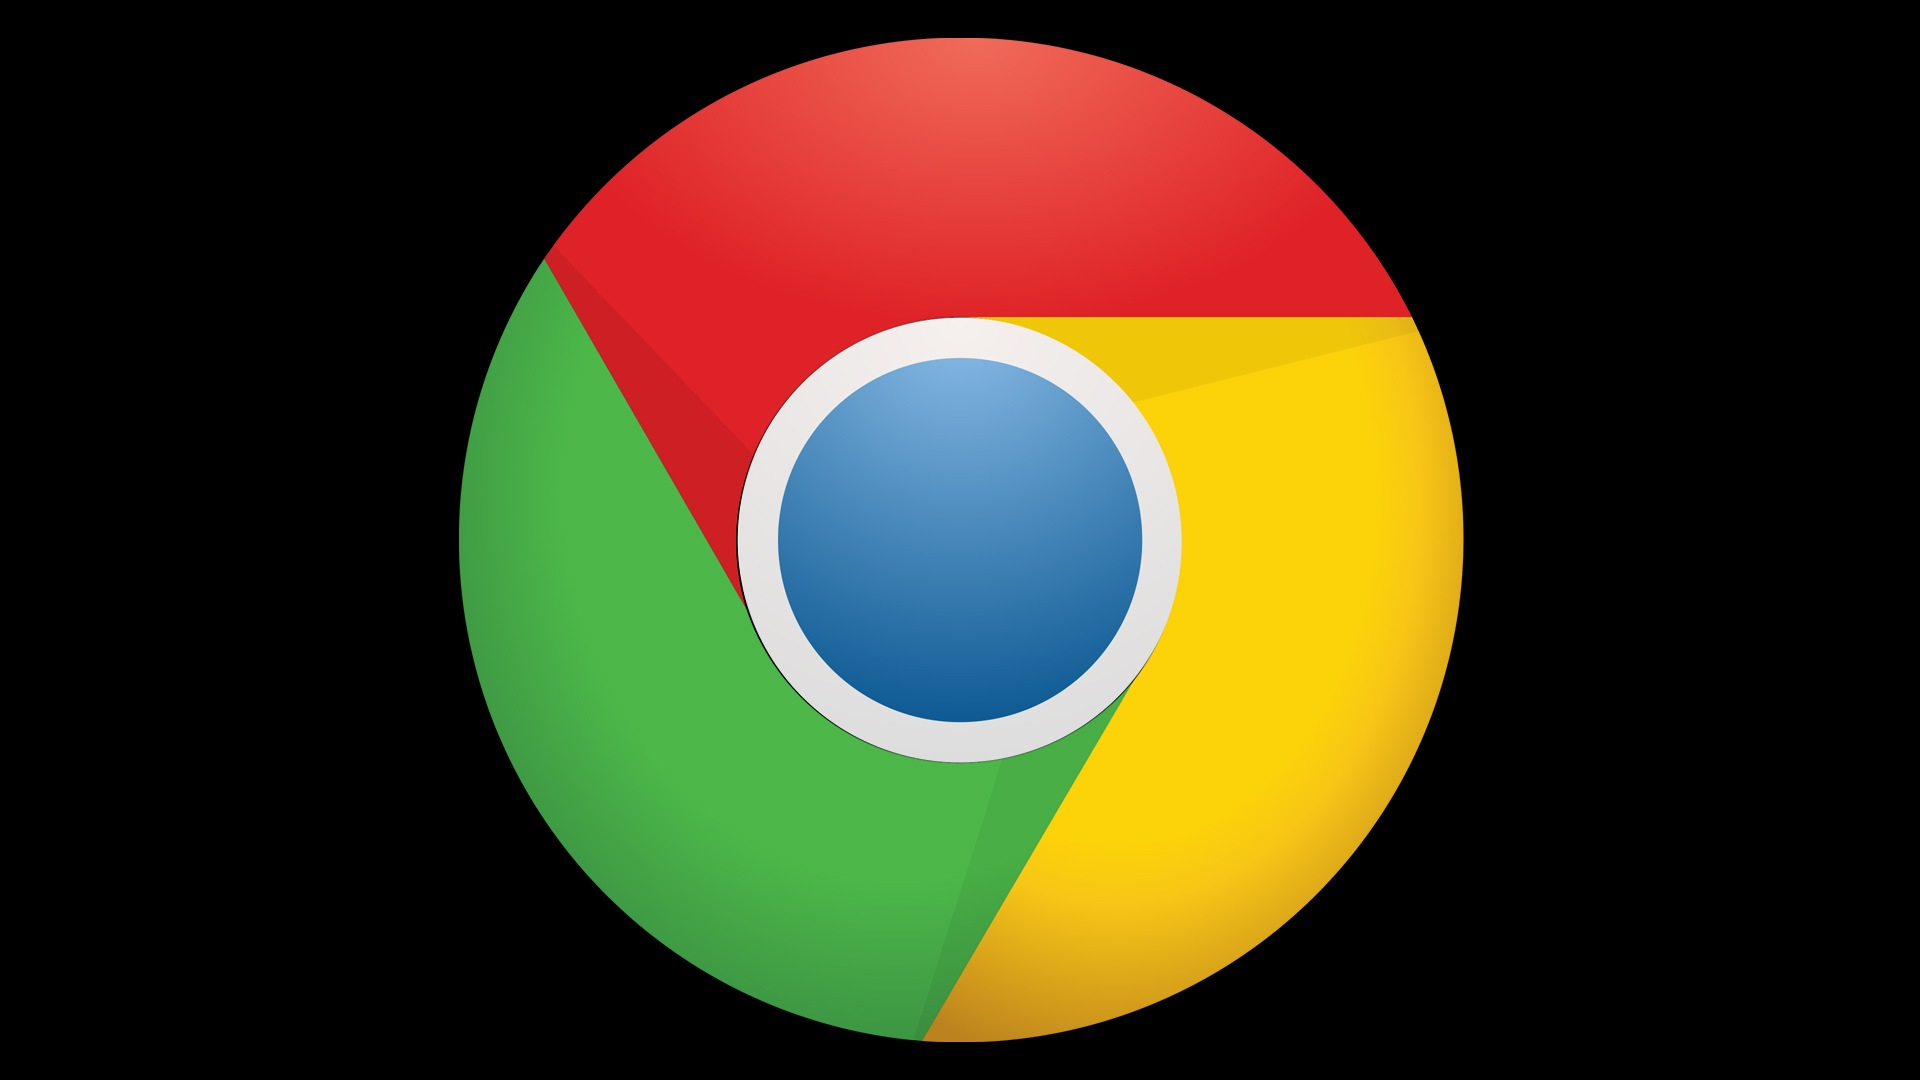 UC Browser vs. Google Chrome - The Speed and Privacy